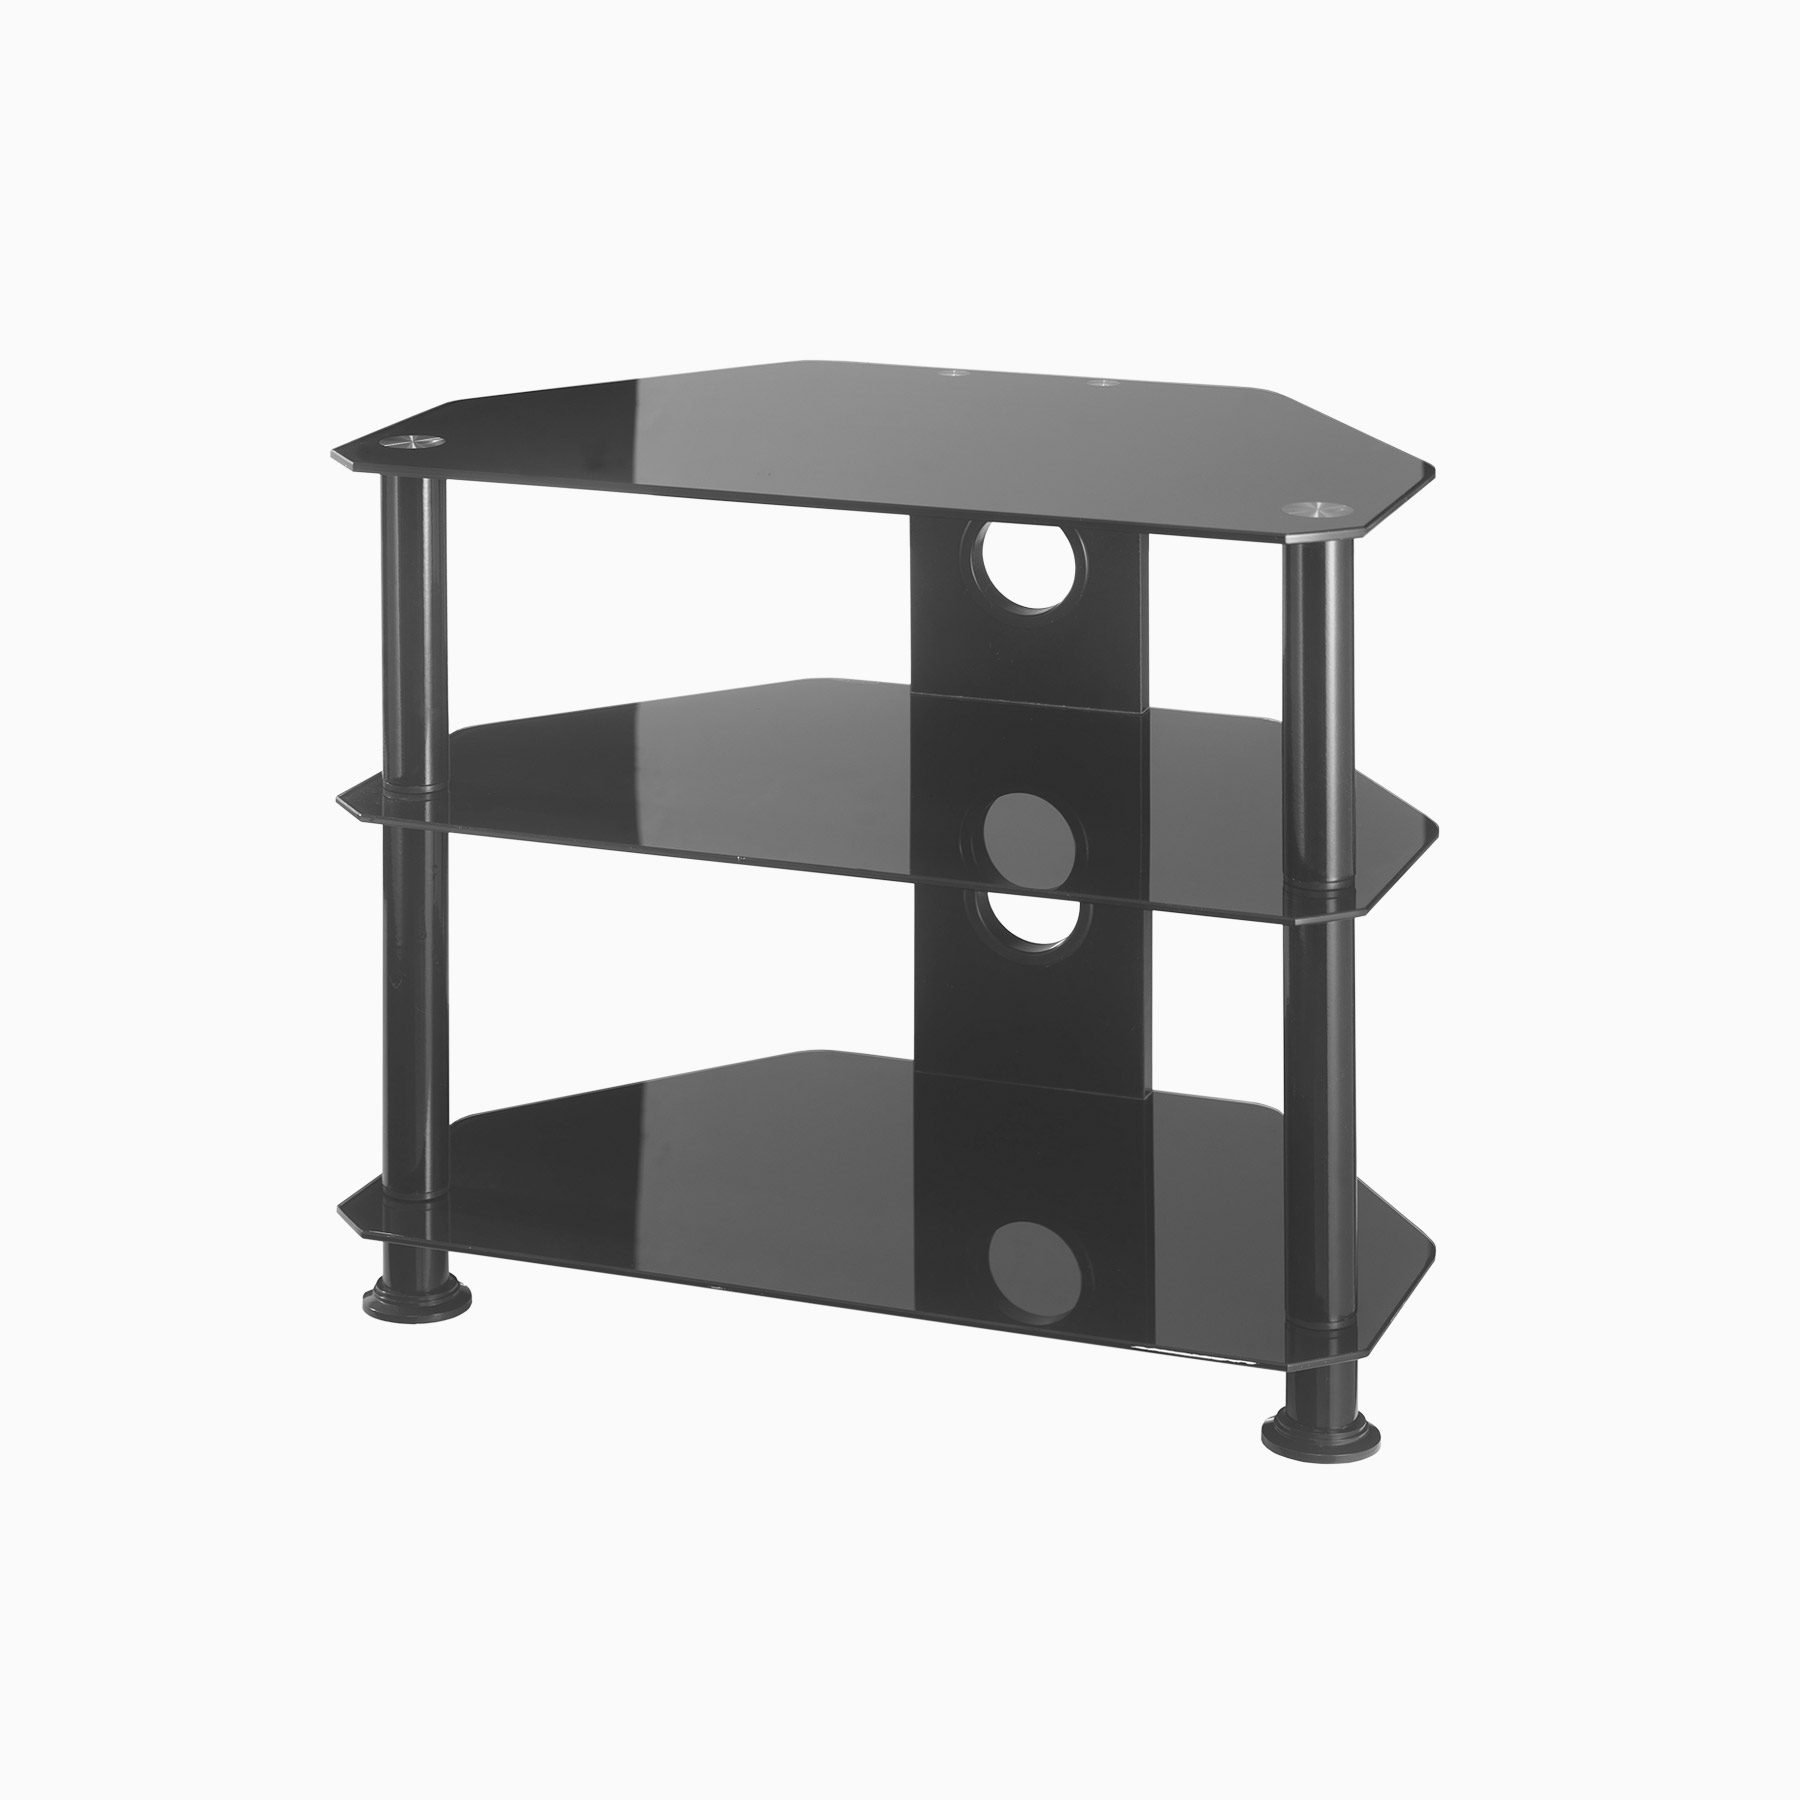 Small Tv Stands For Fashionable Small Glass Corner Tv Stand Up To 26 Inch Tv (View 15 of 20)